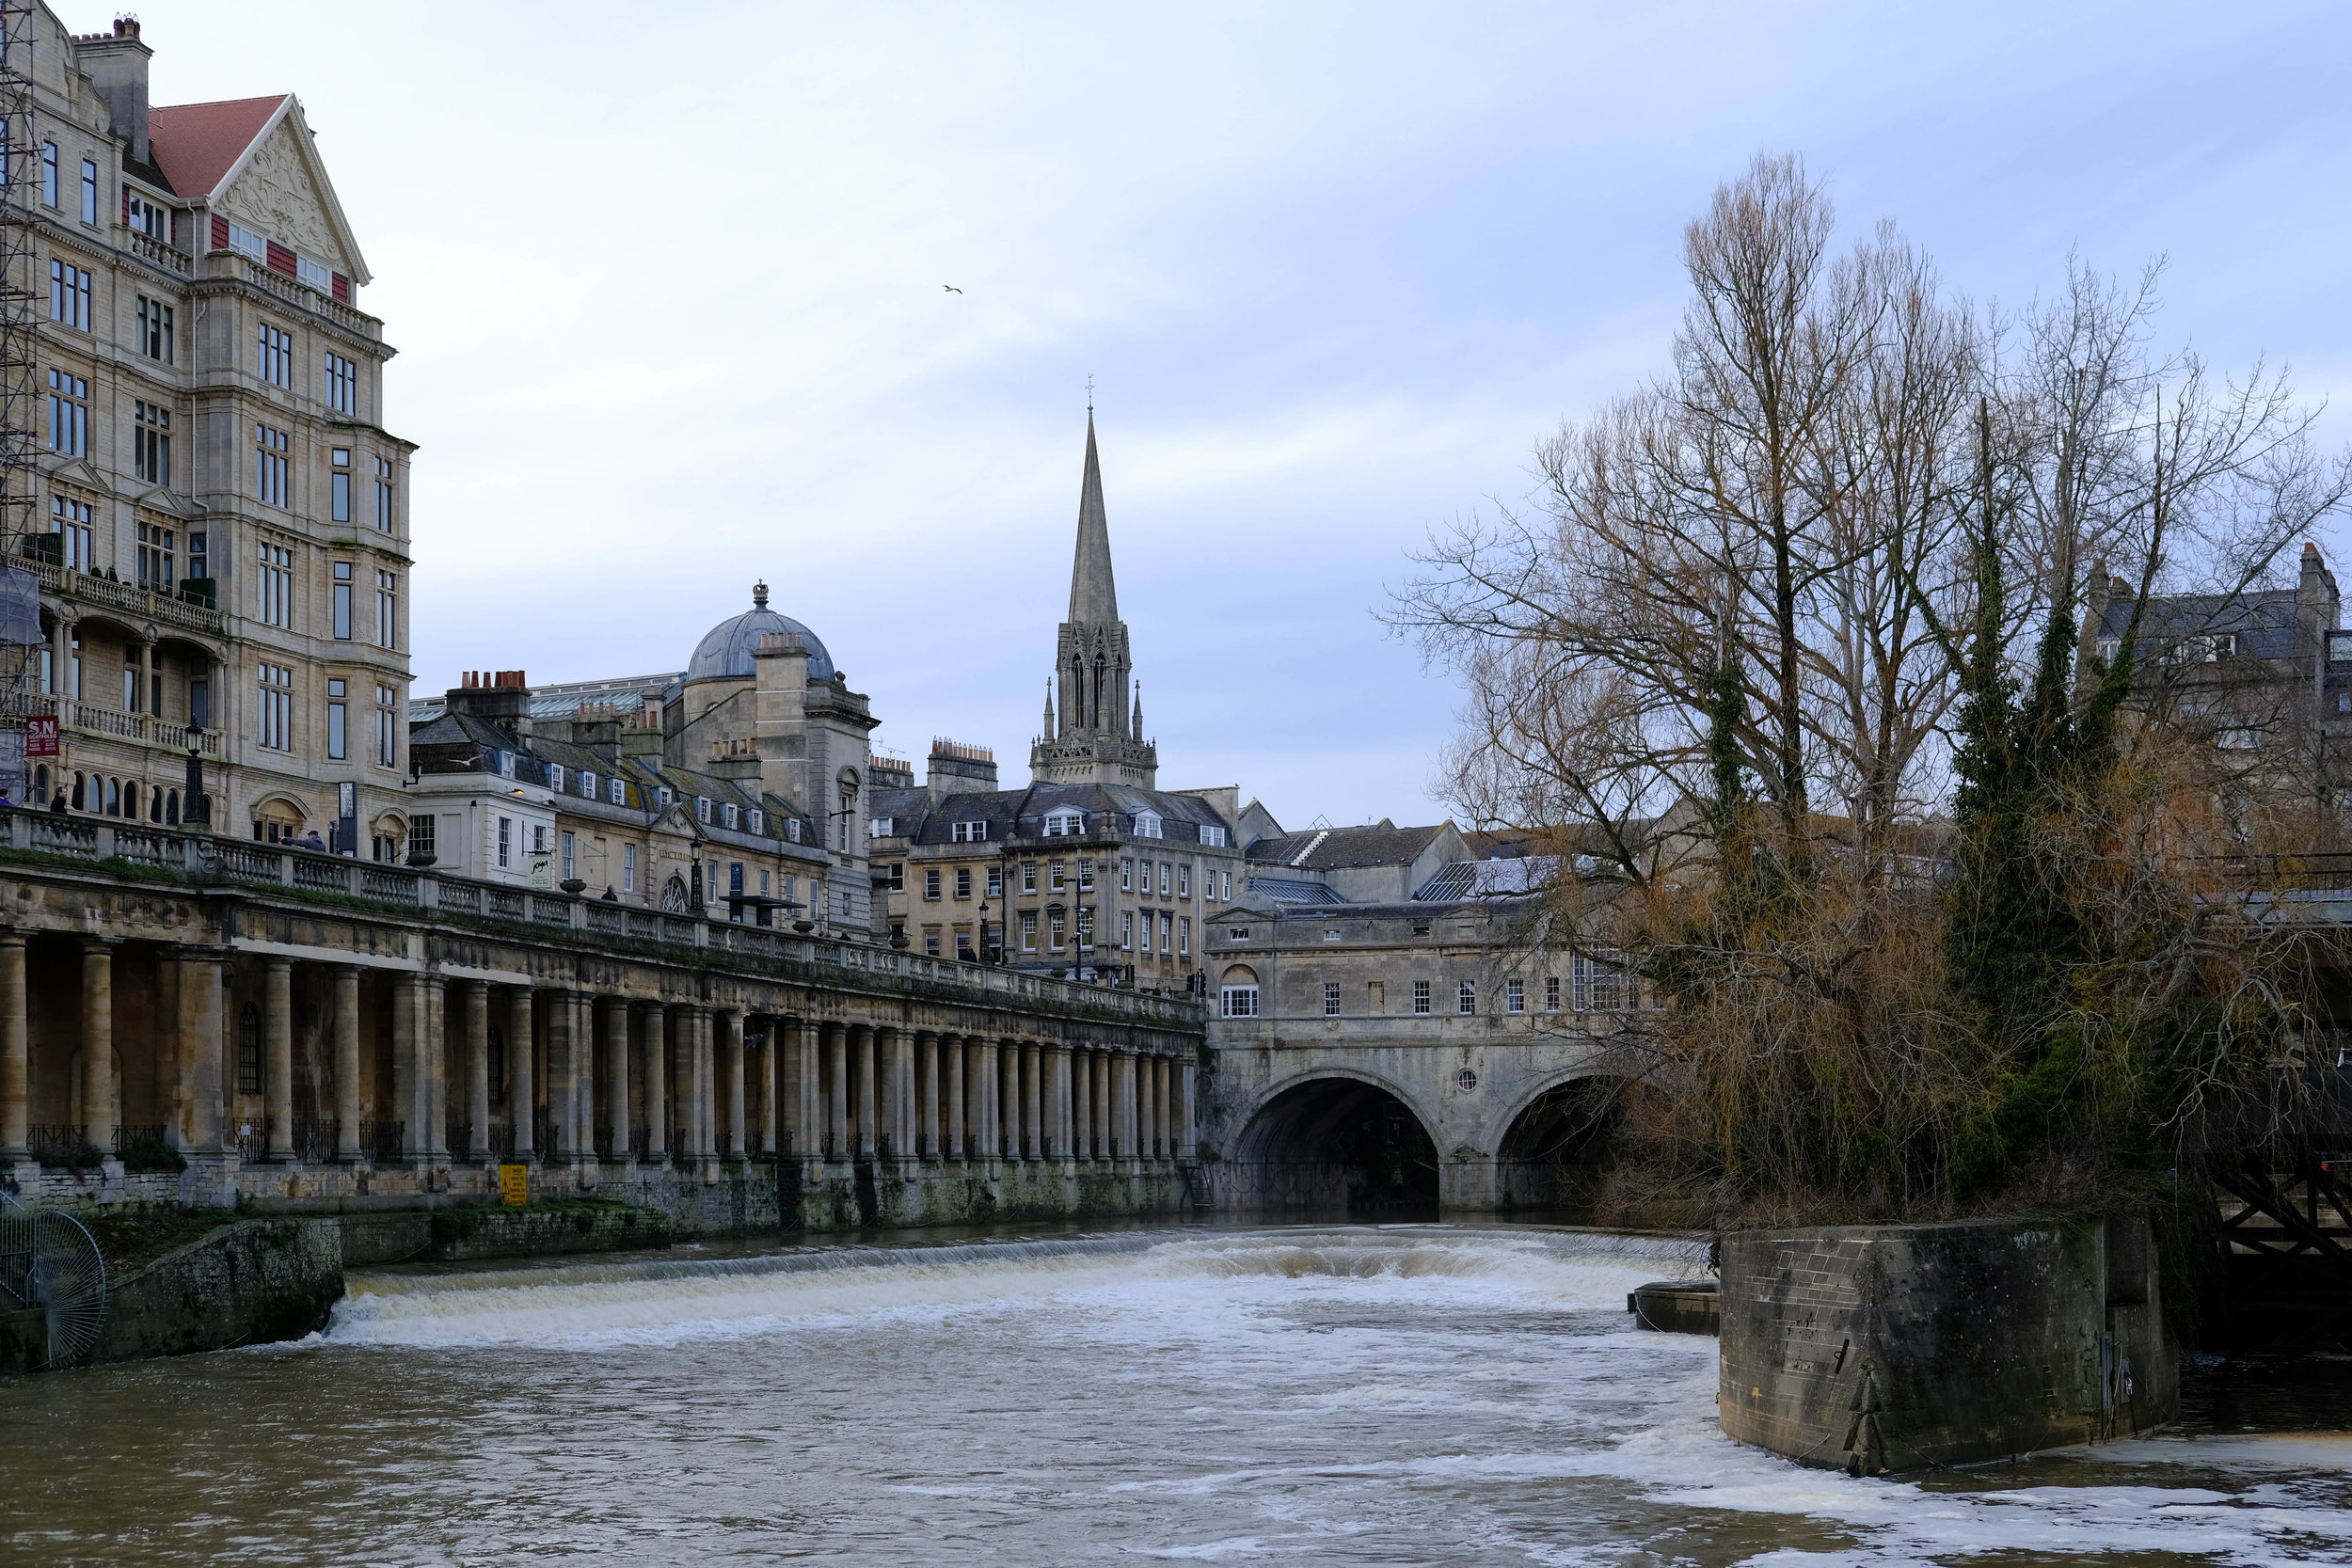 "<p style=""font-family:brandon-grotesque;font-weight:500; font-size:11px; text-center:left; color:light grey;letter-spacing: 1px"">FEBRUARY 17, 2018 • PULTENEY BRIDGE • �Bath, UK 🇬🇧</p>"